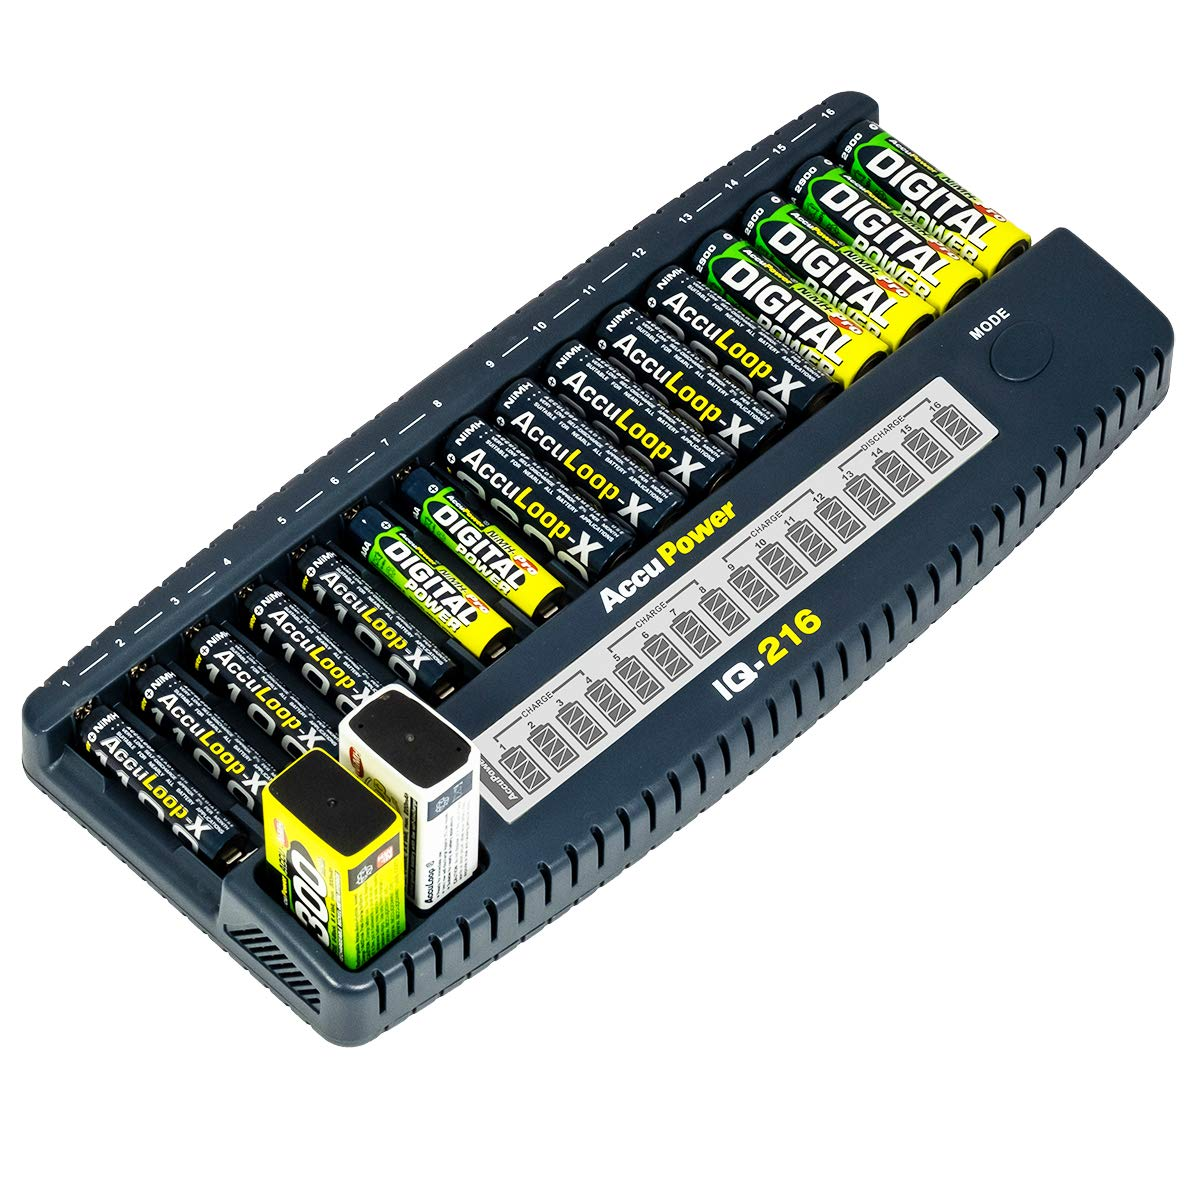 AccuPower IQ216 NiMH NiCd 16 Slot AA AAA 9V Battery Charger with LCD Display